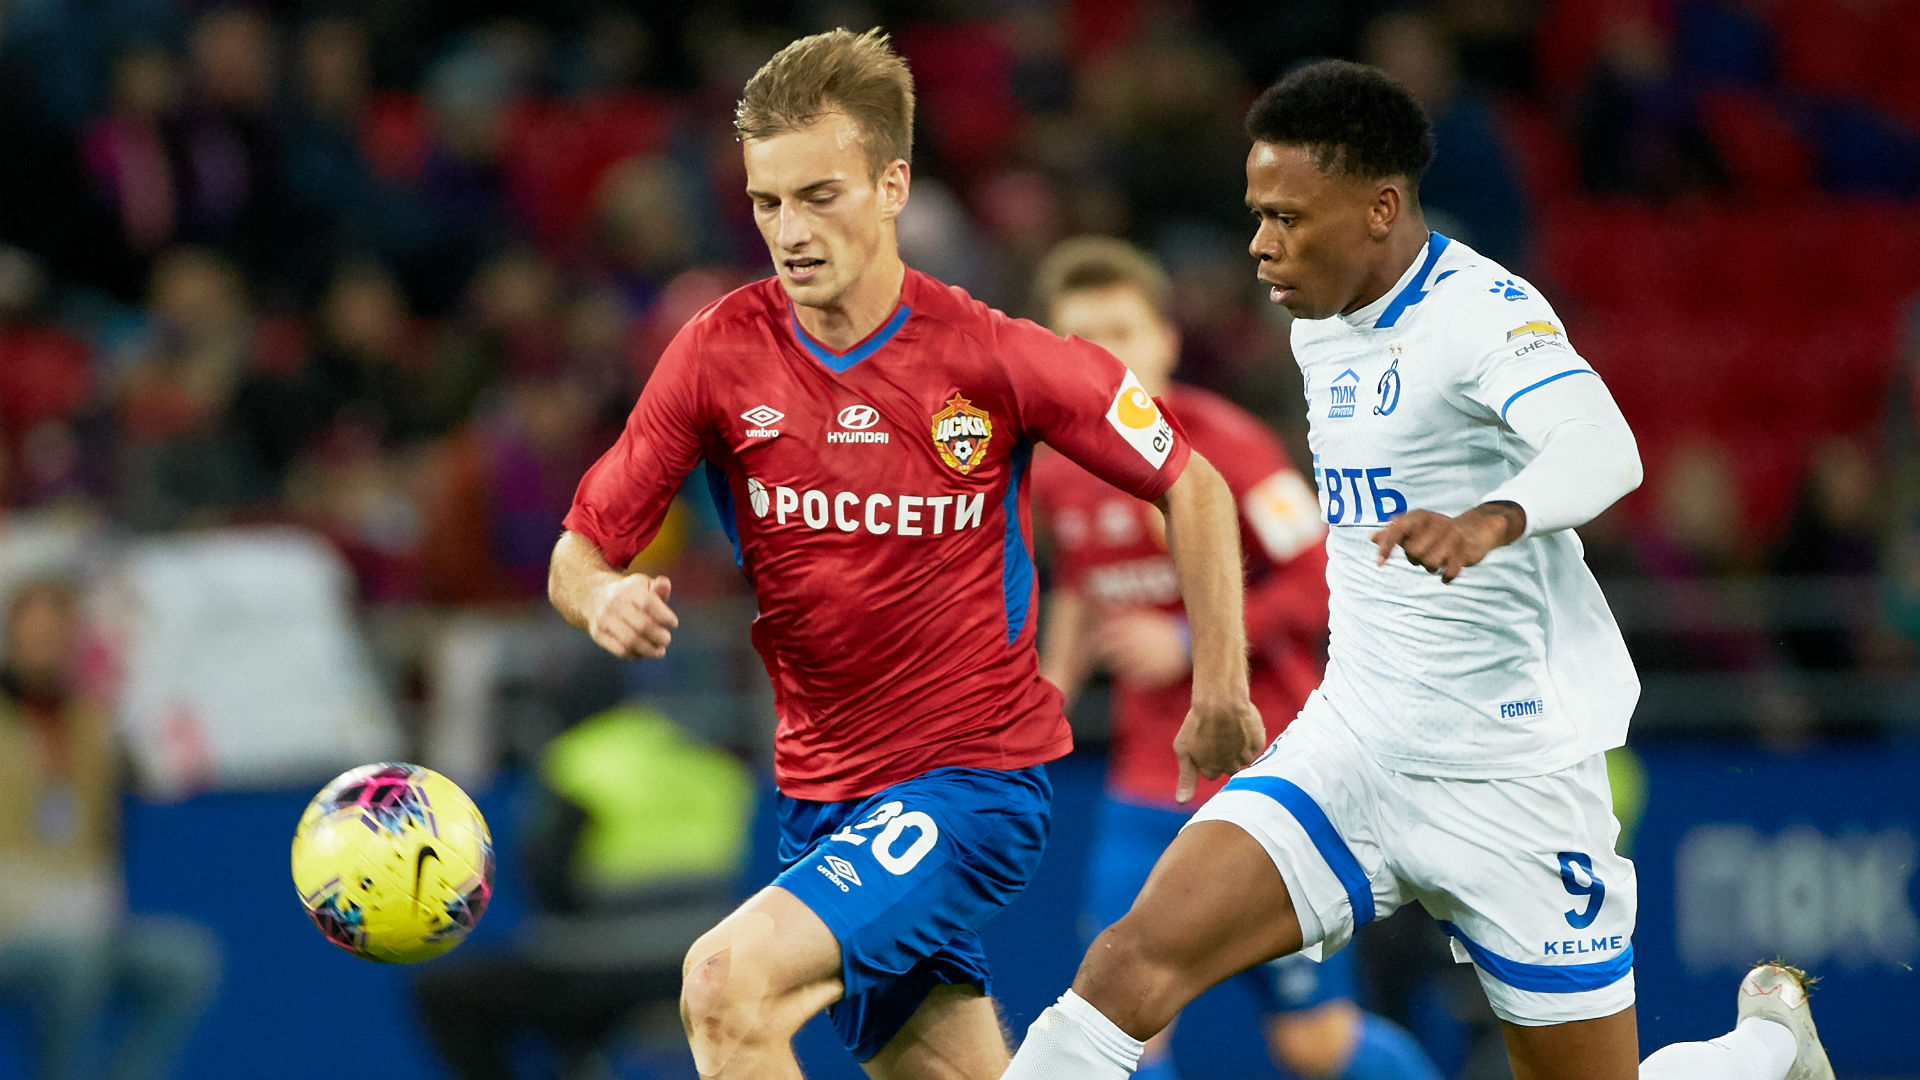 N'Jie on target as Dynamo Moscow hold FC Ufa